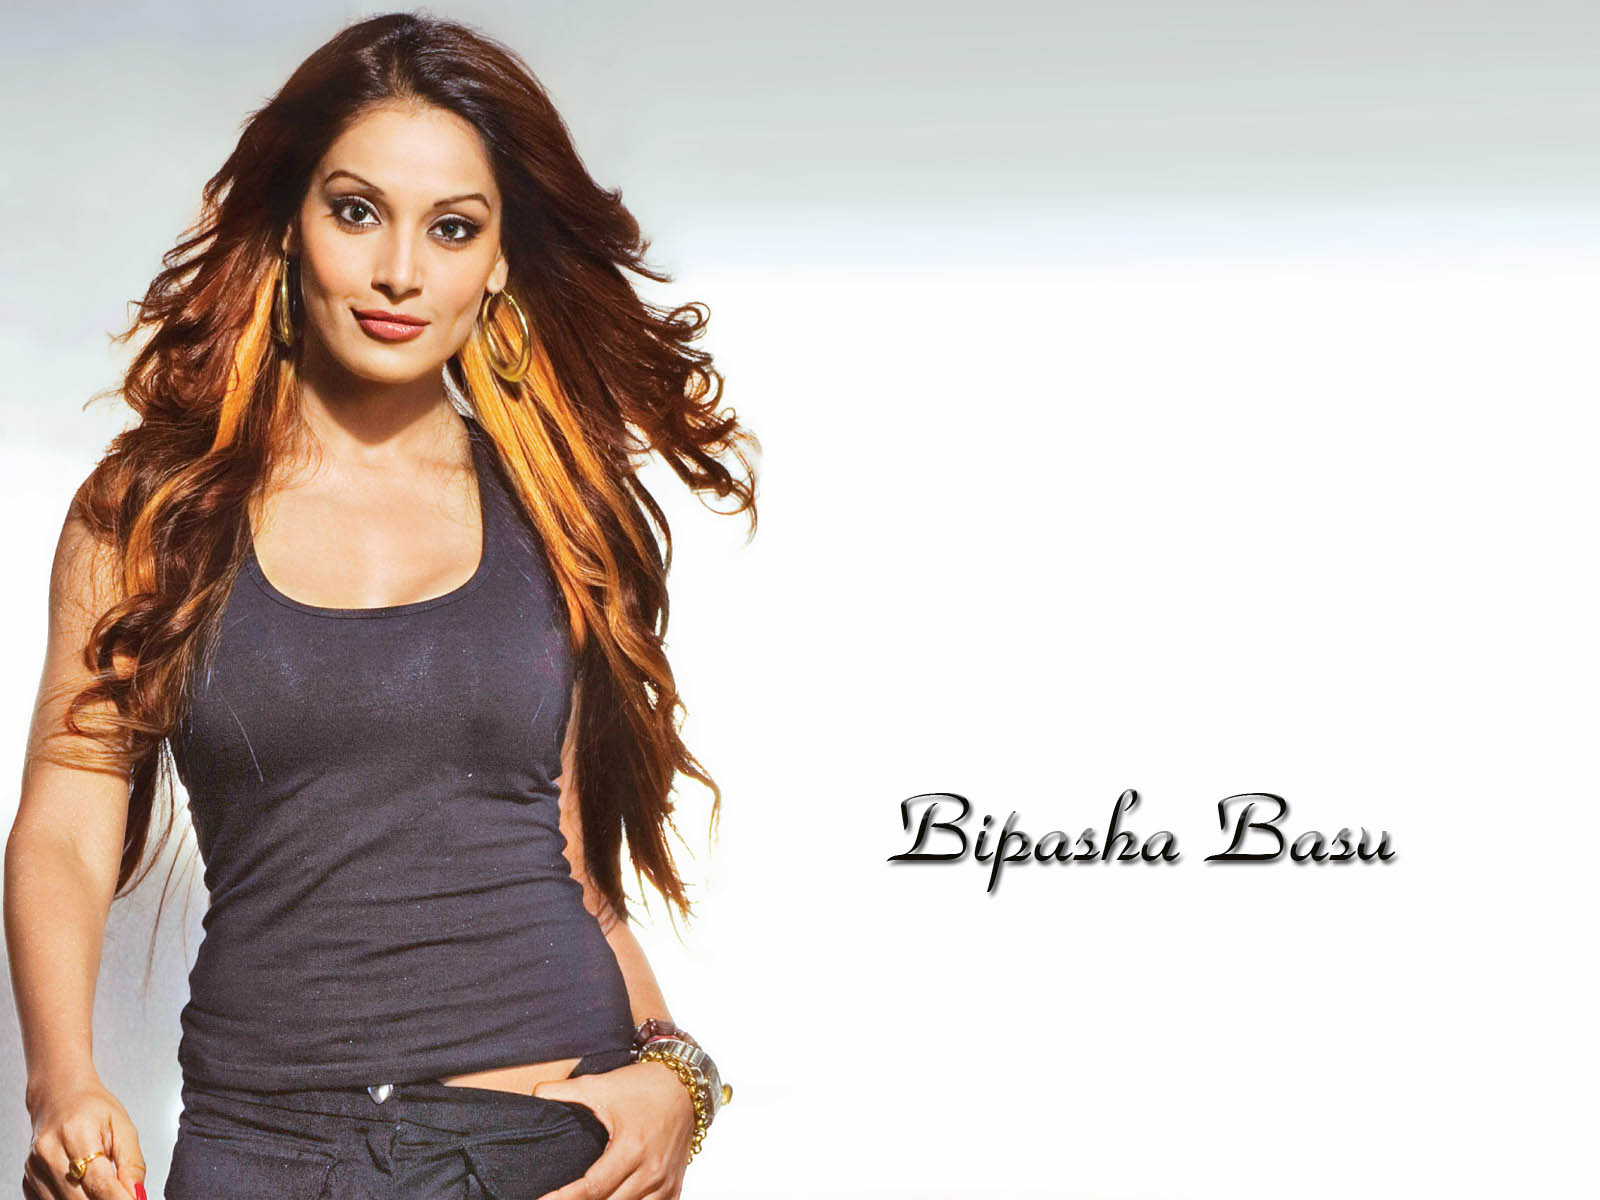 Bipasha basu actress wallpaper